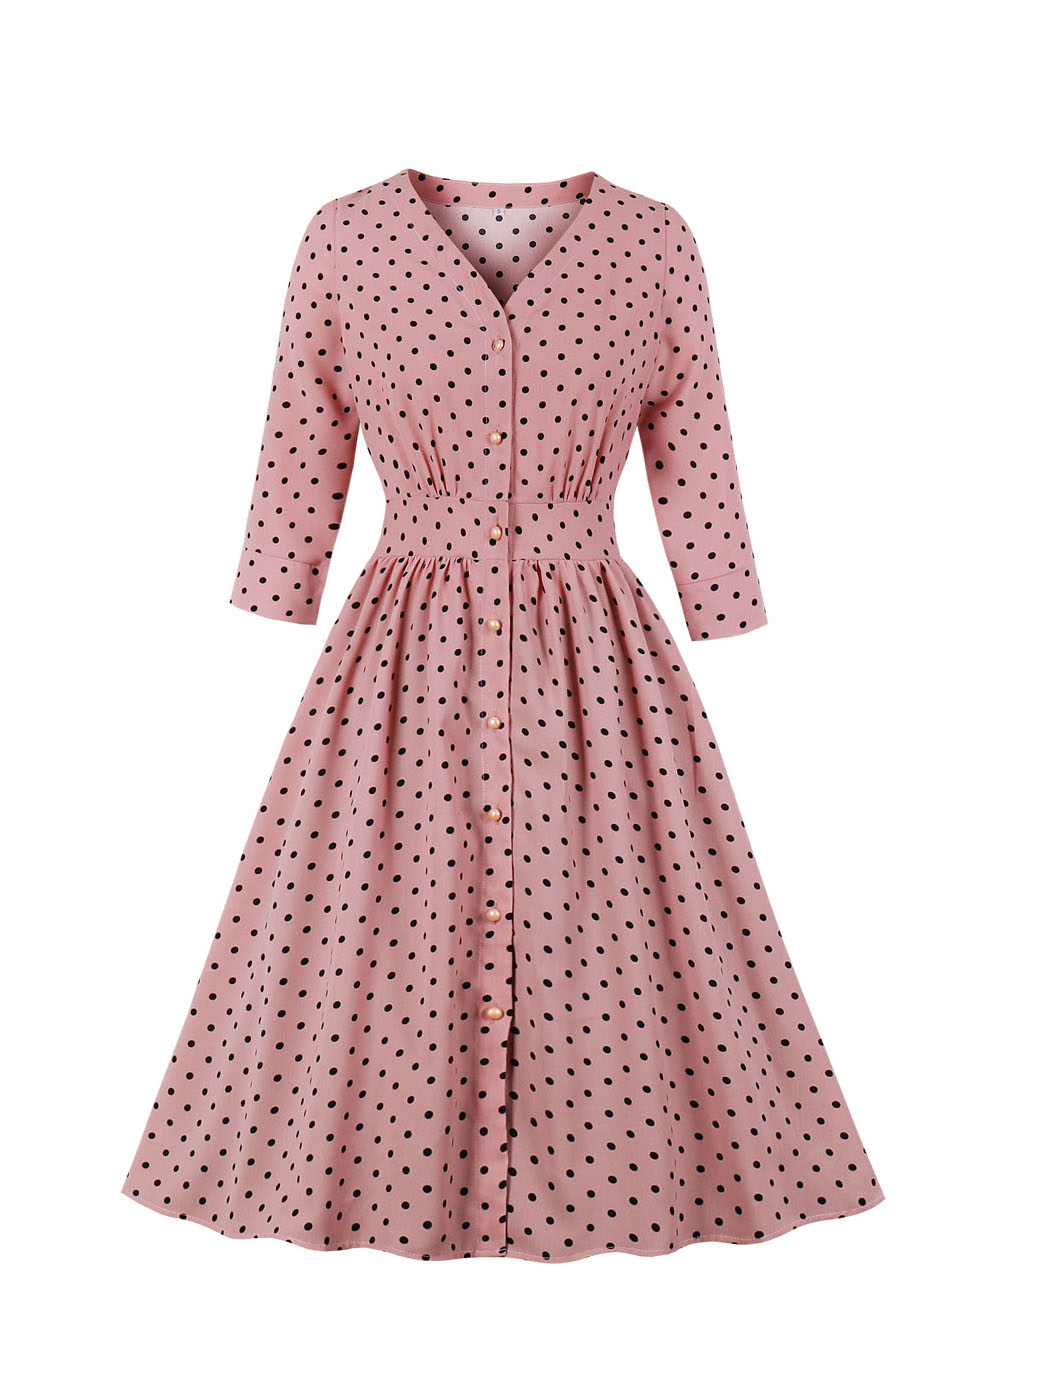 Fall Fitted Pink Long Sleeve Polka Dot Dress